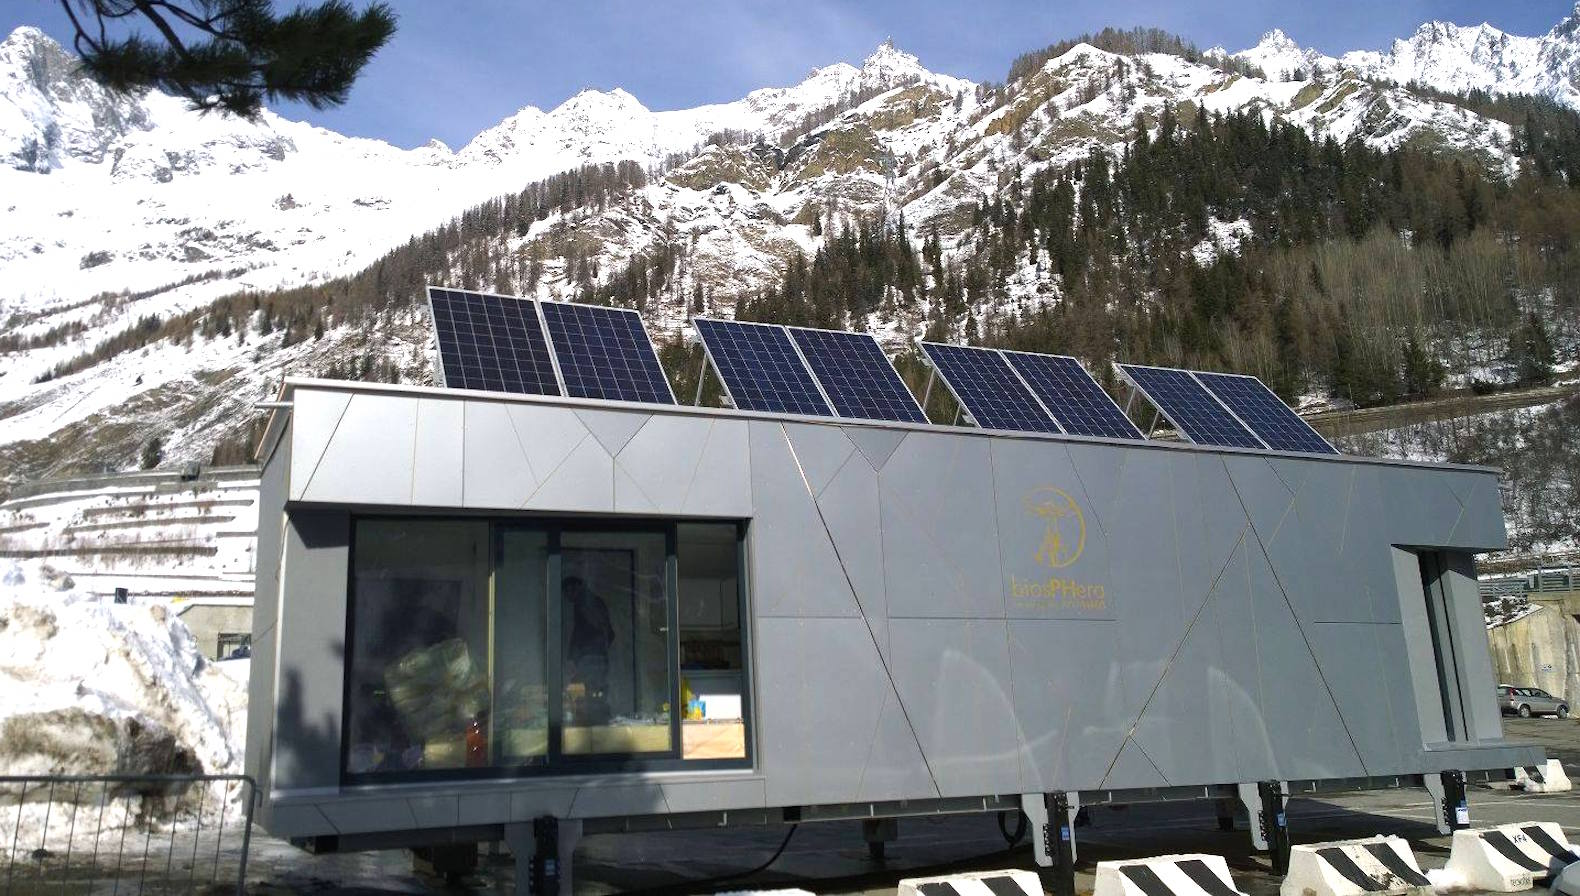 Zero-energy Biosphera 2.0 prefab gives you the freedom to live almost anywhere